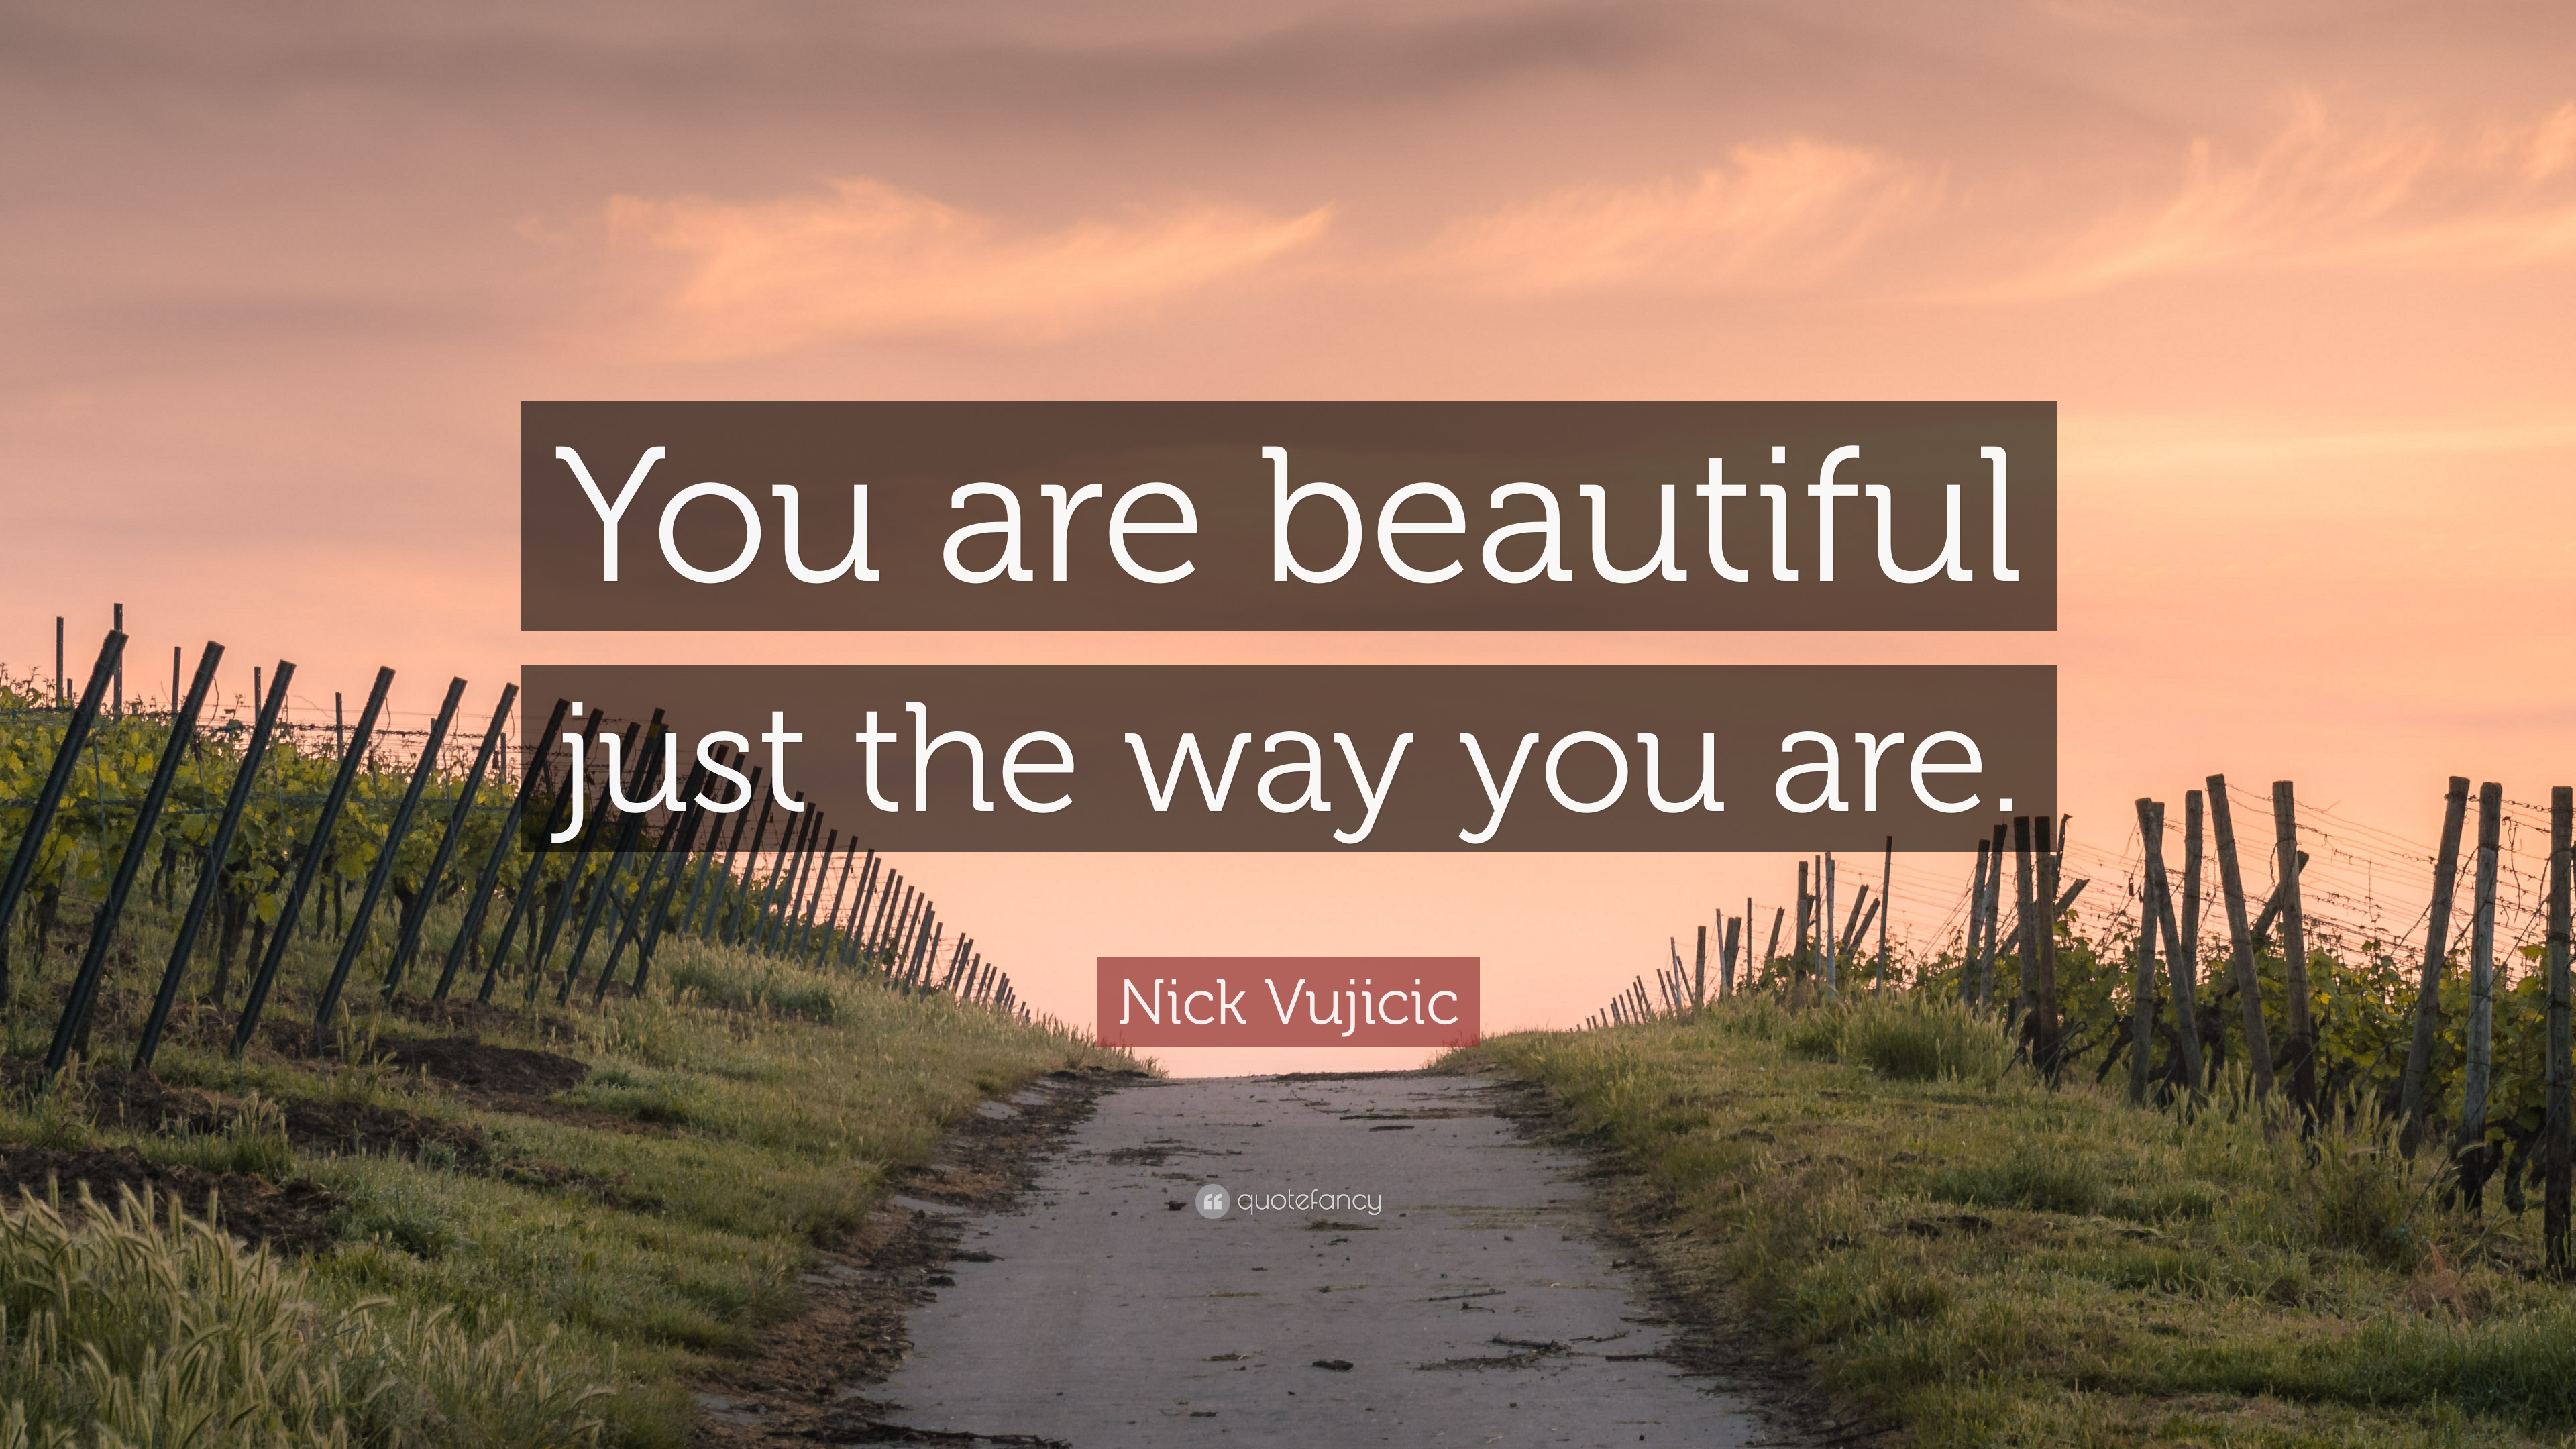 Nick Vujicic Quote: You are beautiful just the way you